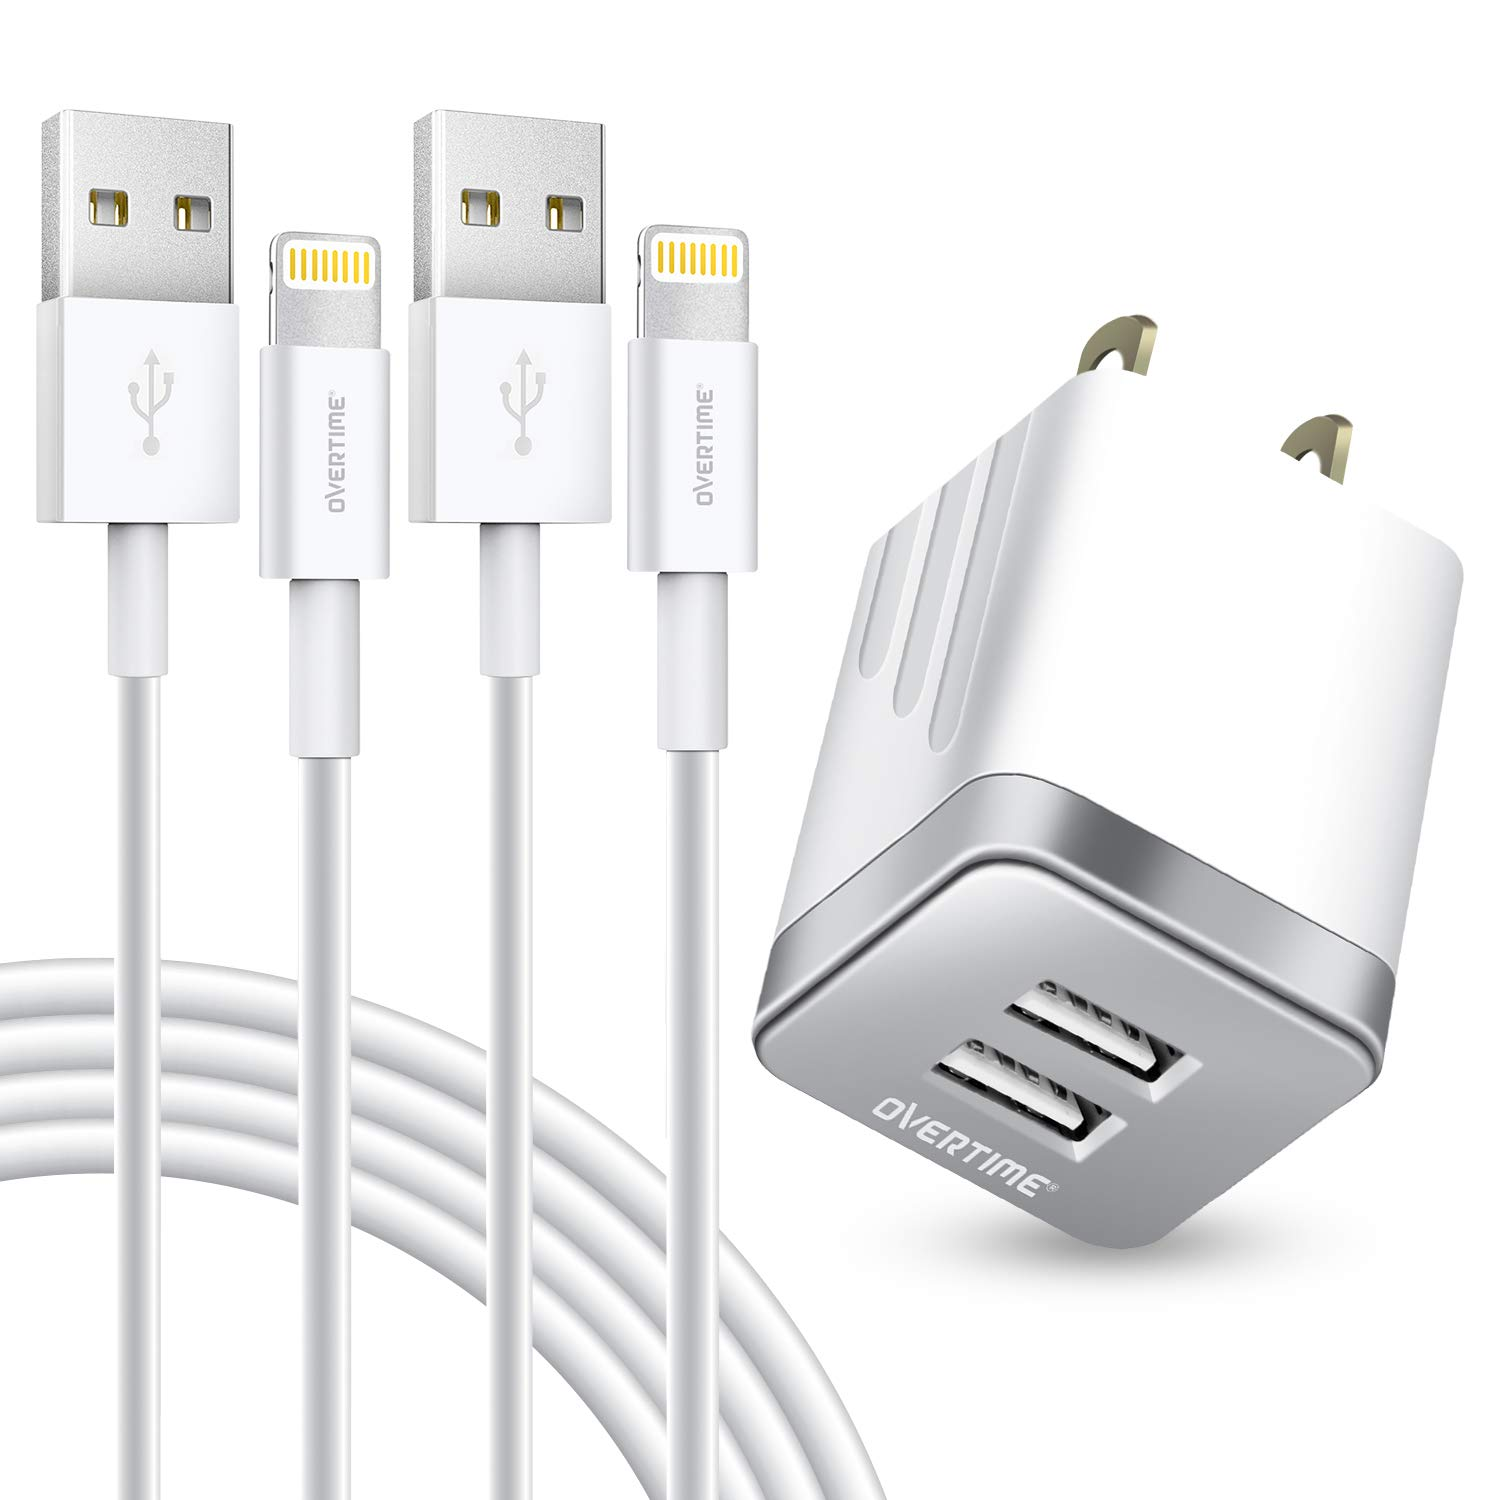 iPhone Charger Set, 2-Pack Overtime Apple MFi Certified Lightning Cables with 1 Dual USB Wall Adapter - 2.4 AMP Compatible w/iPhone 11 Pro Max XS XR X 8 7 6S 6 Plus SE iPad (Silver/White, 4ft)